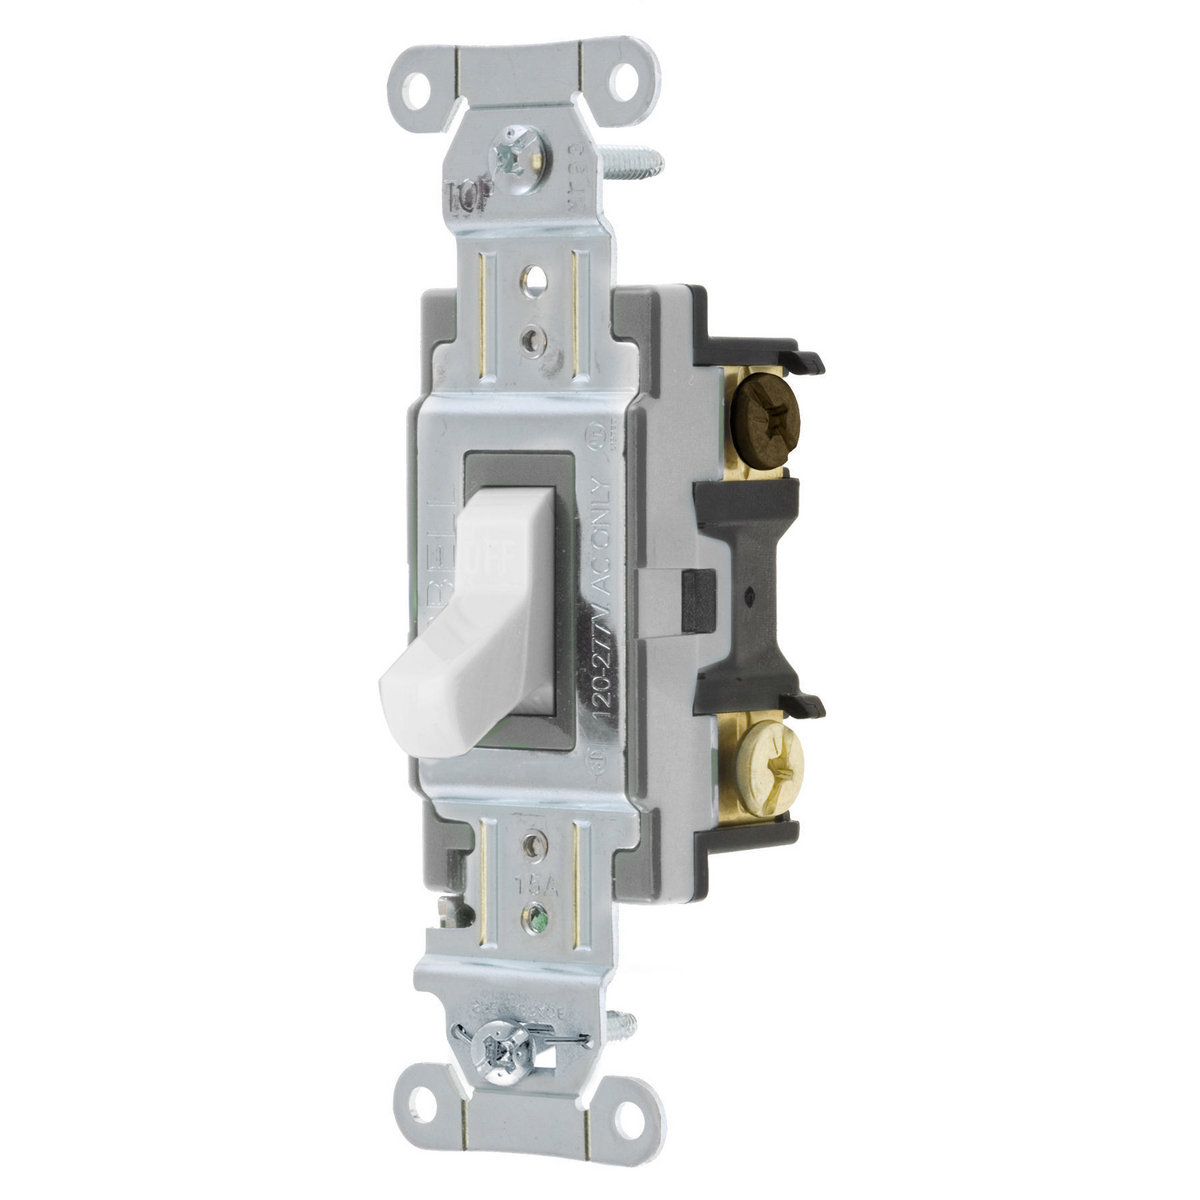 Hubbell CS315-W 15A 120/277V 3Way White Toggle Switch. Spec Grade Commercial Series